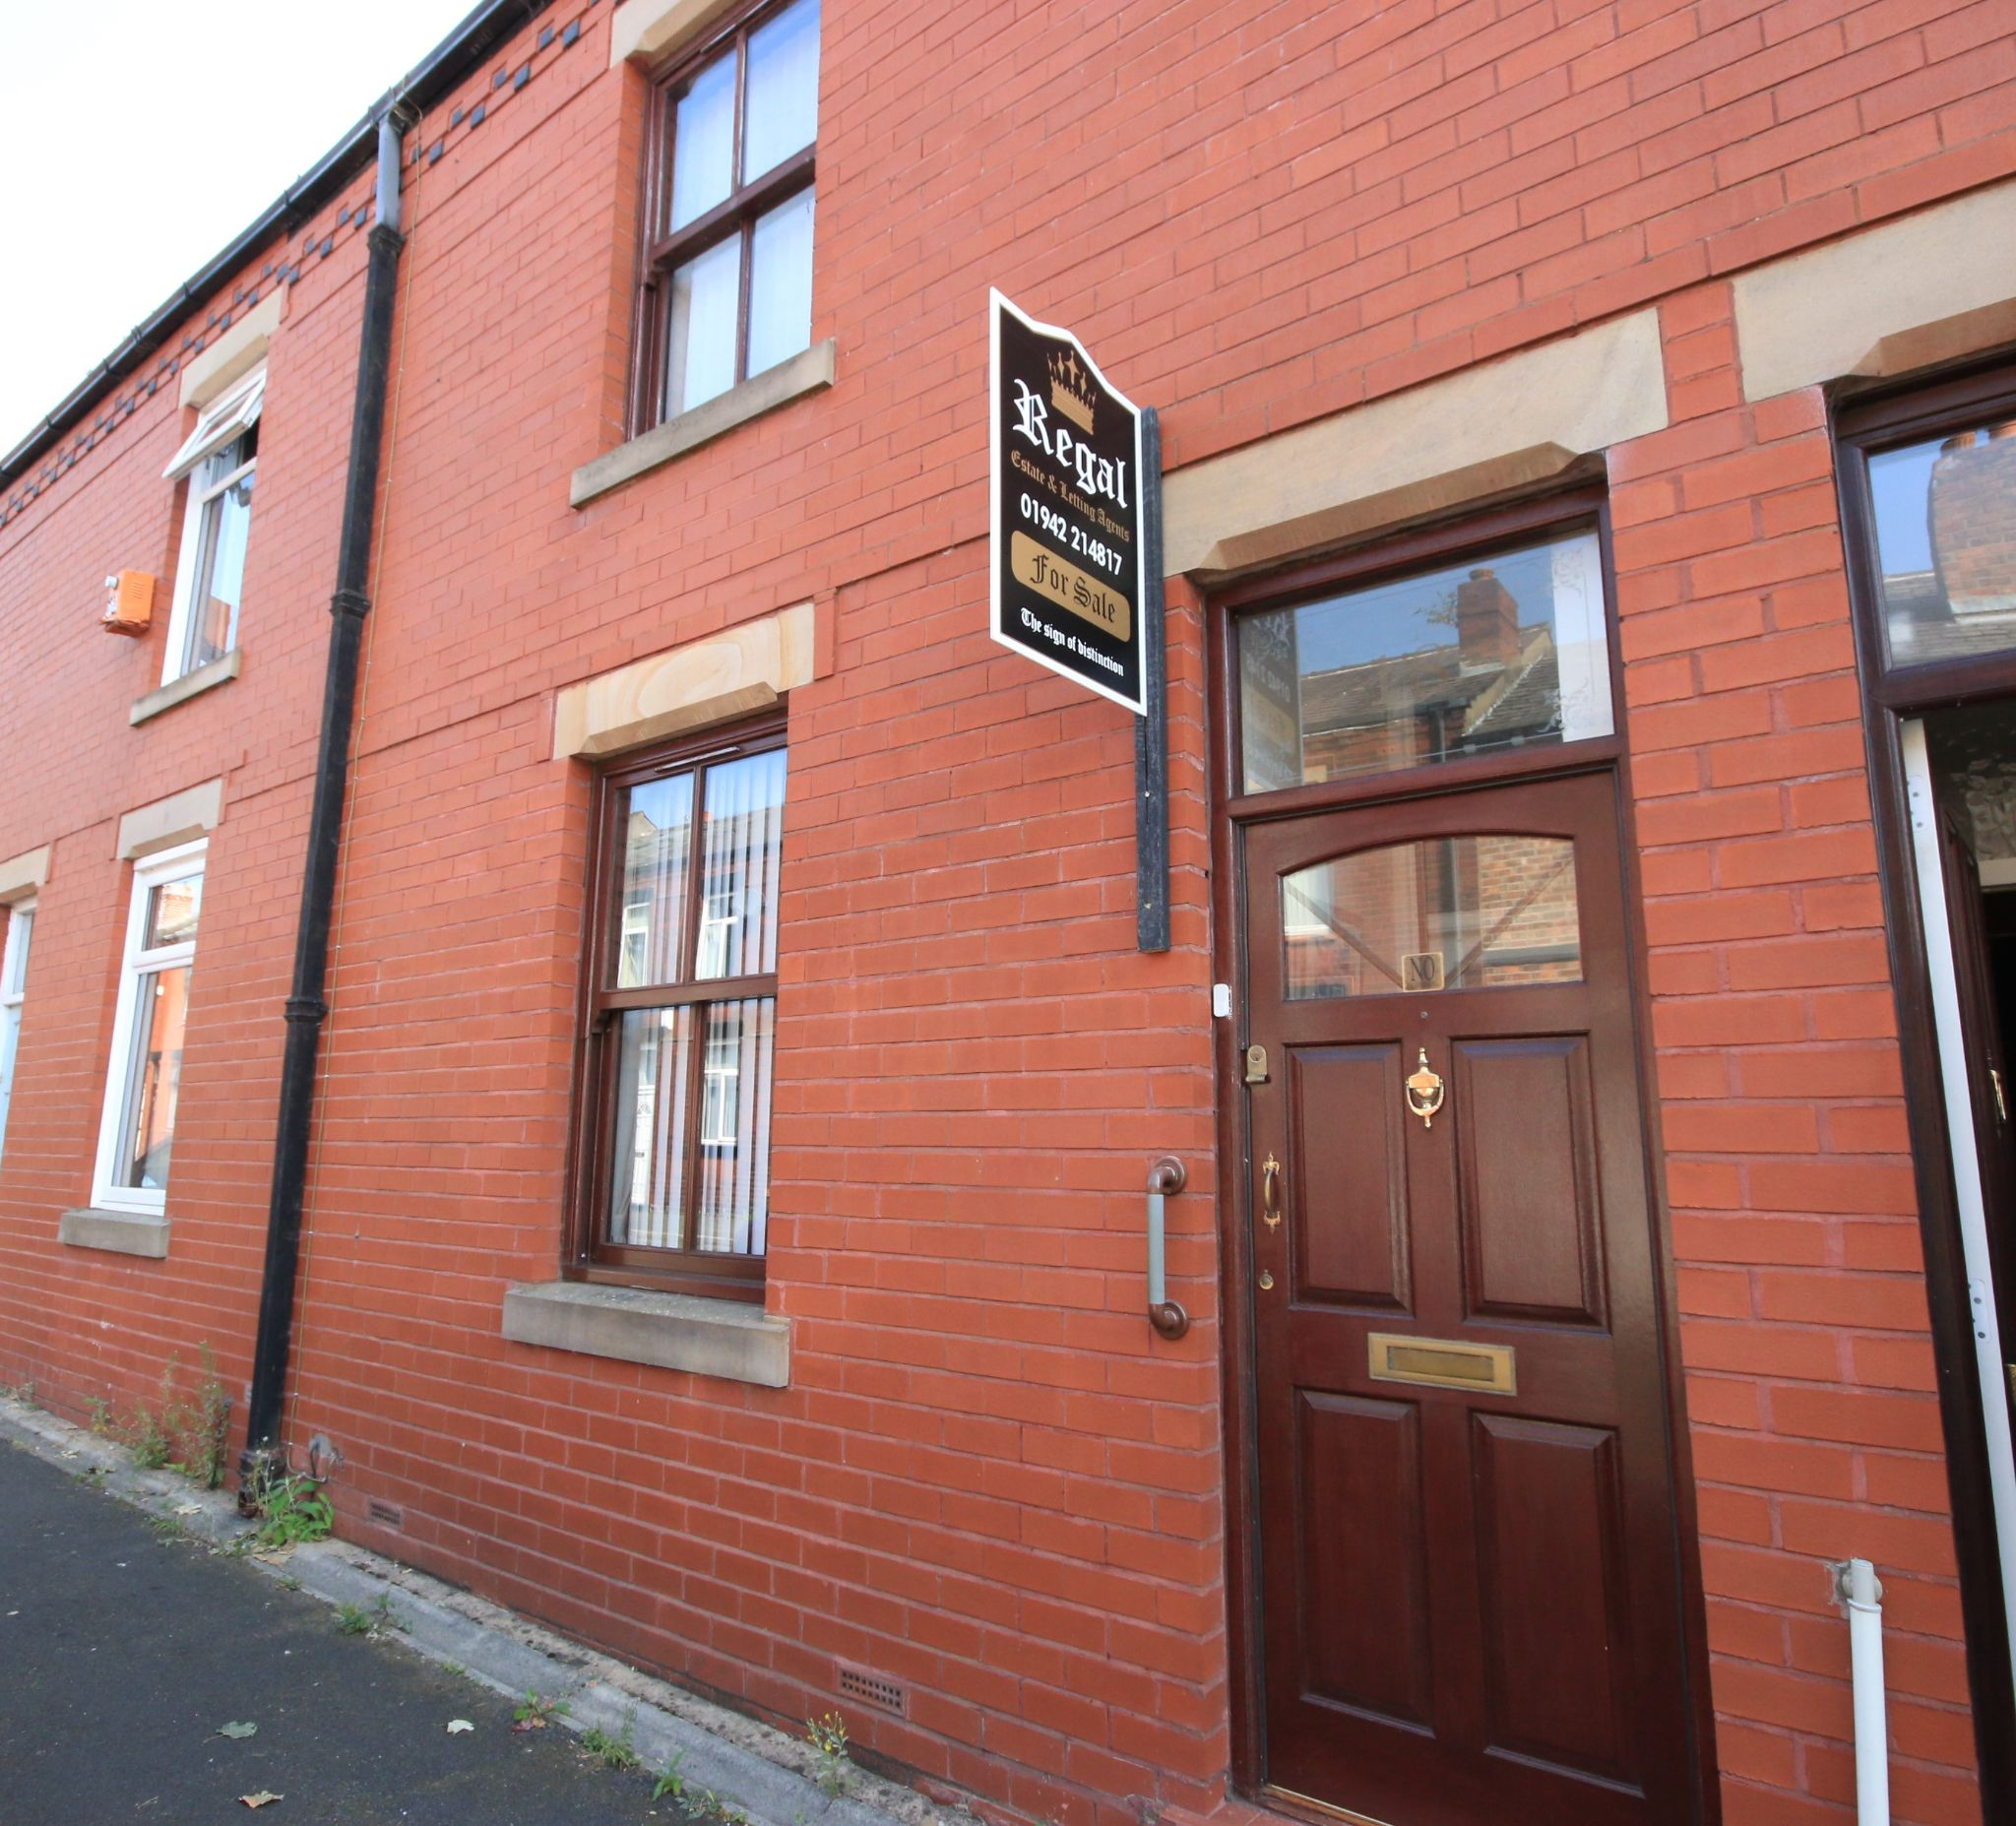 2 bedroom mid terraced house For Sale in Wigan - Photograph 1.